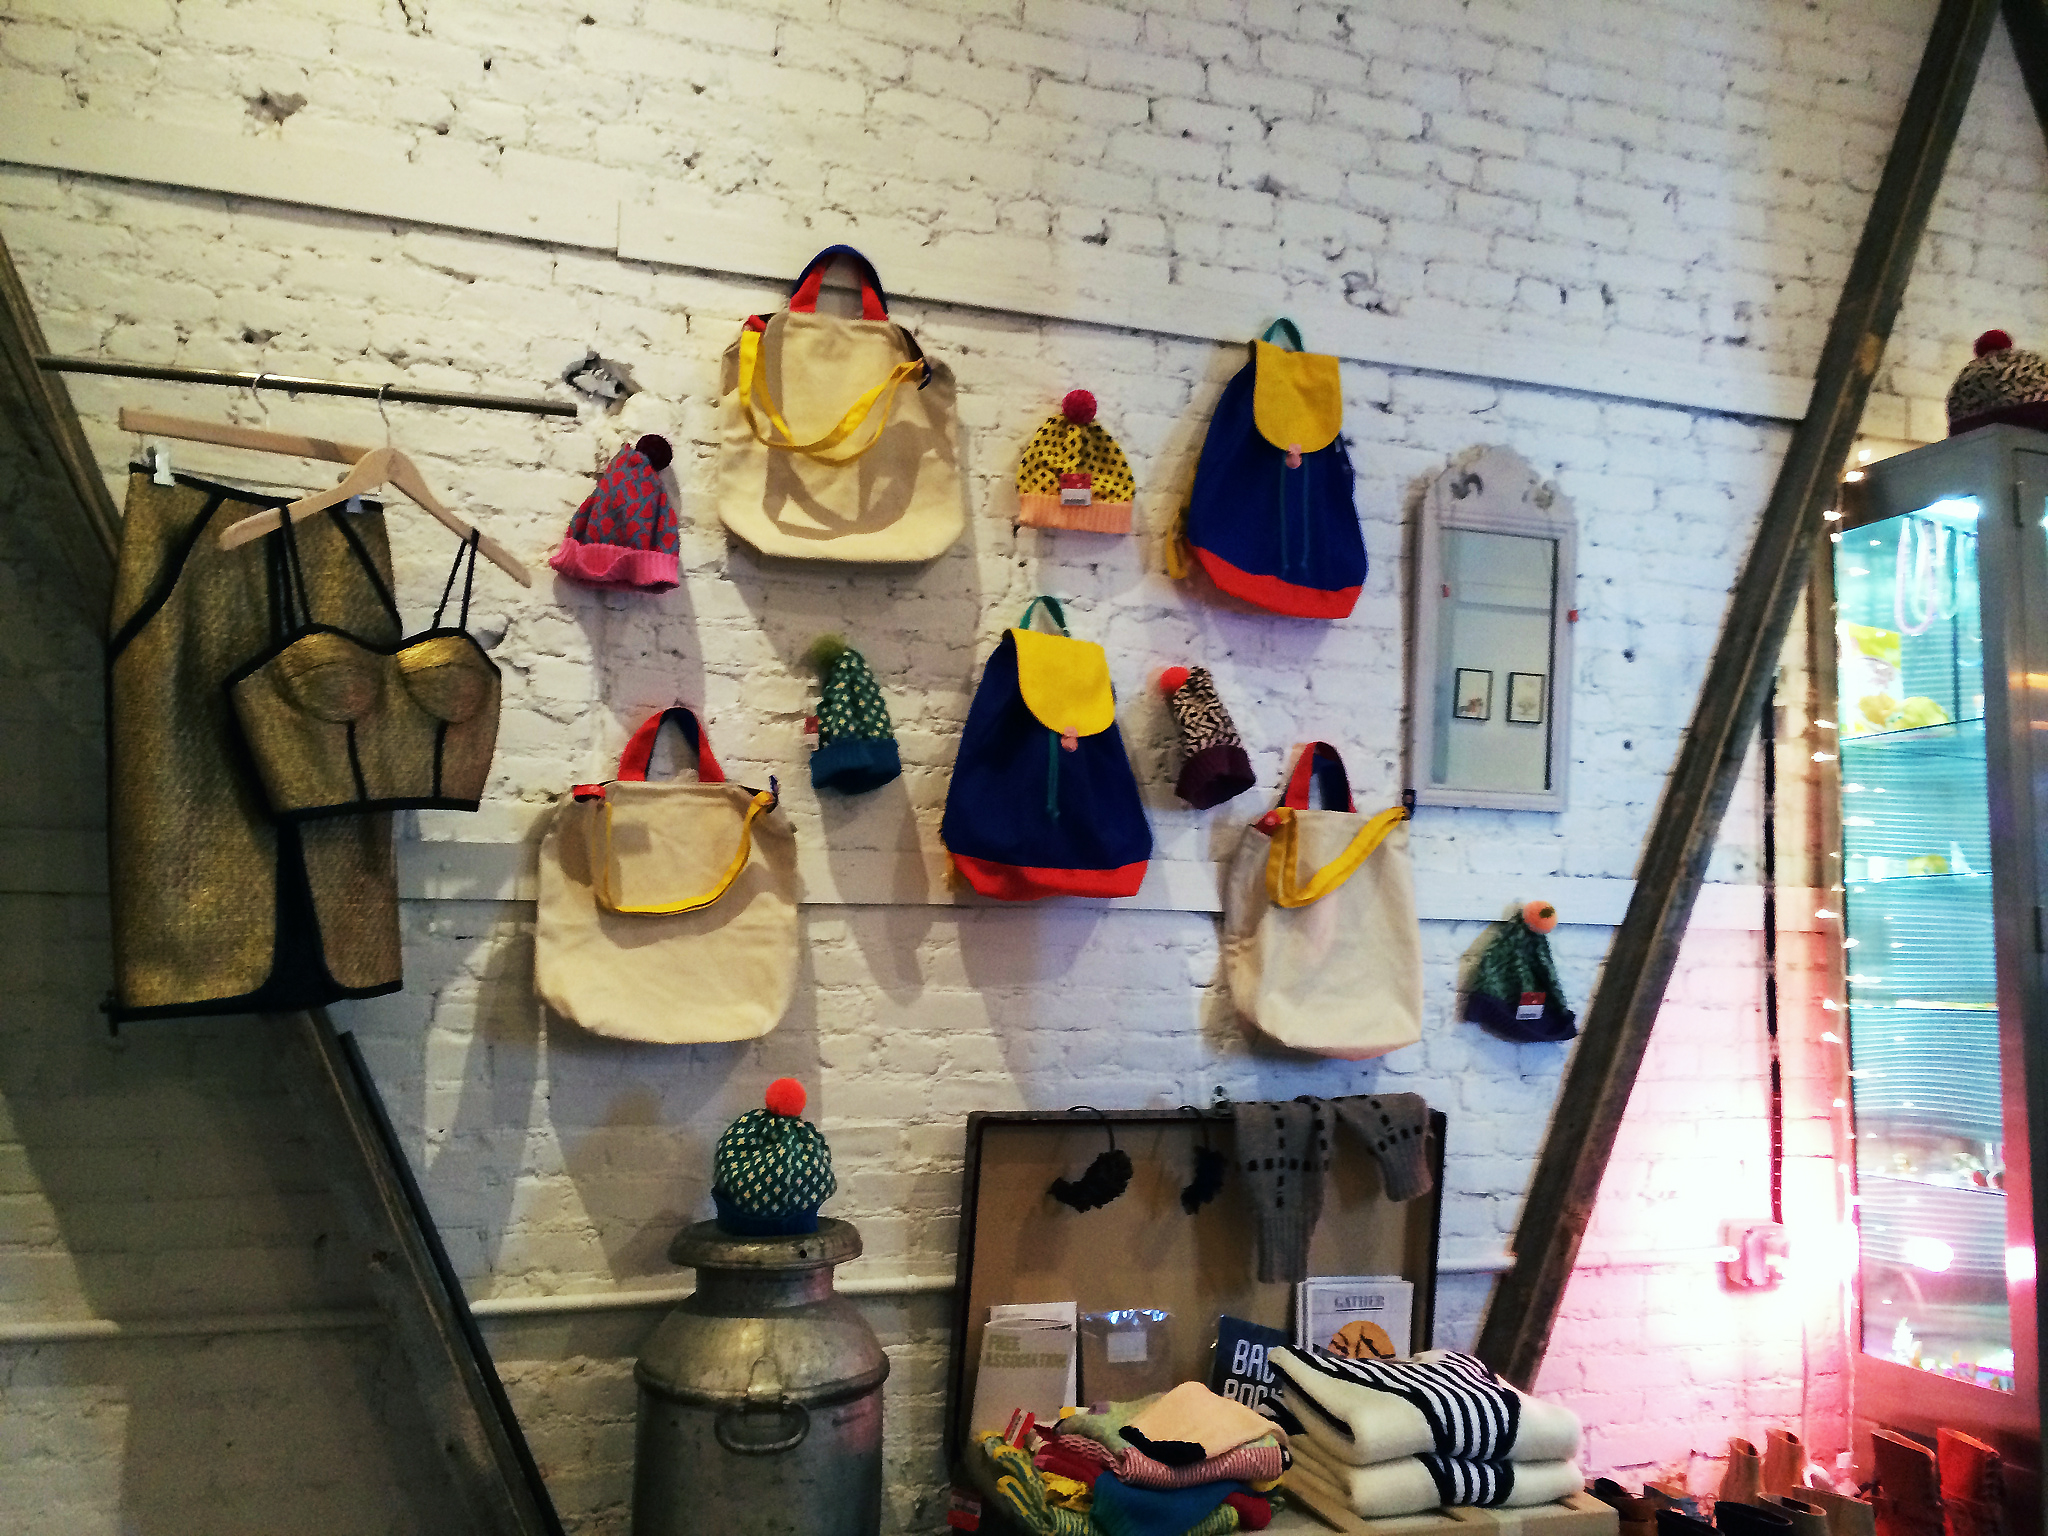 Backpack accessory wall at American Two Shot in New York. Photo by alphacityguides.